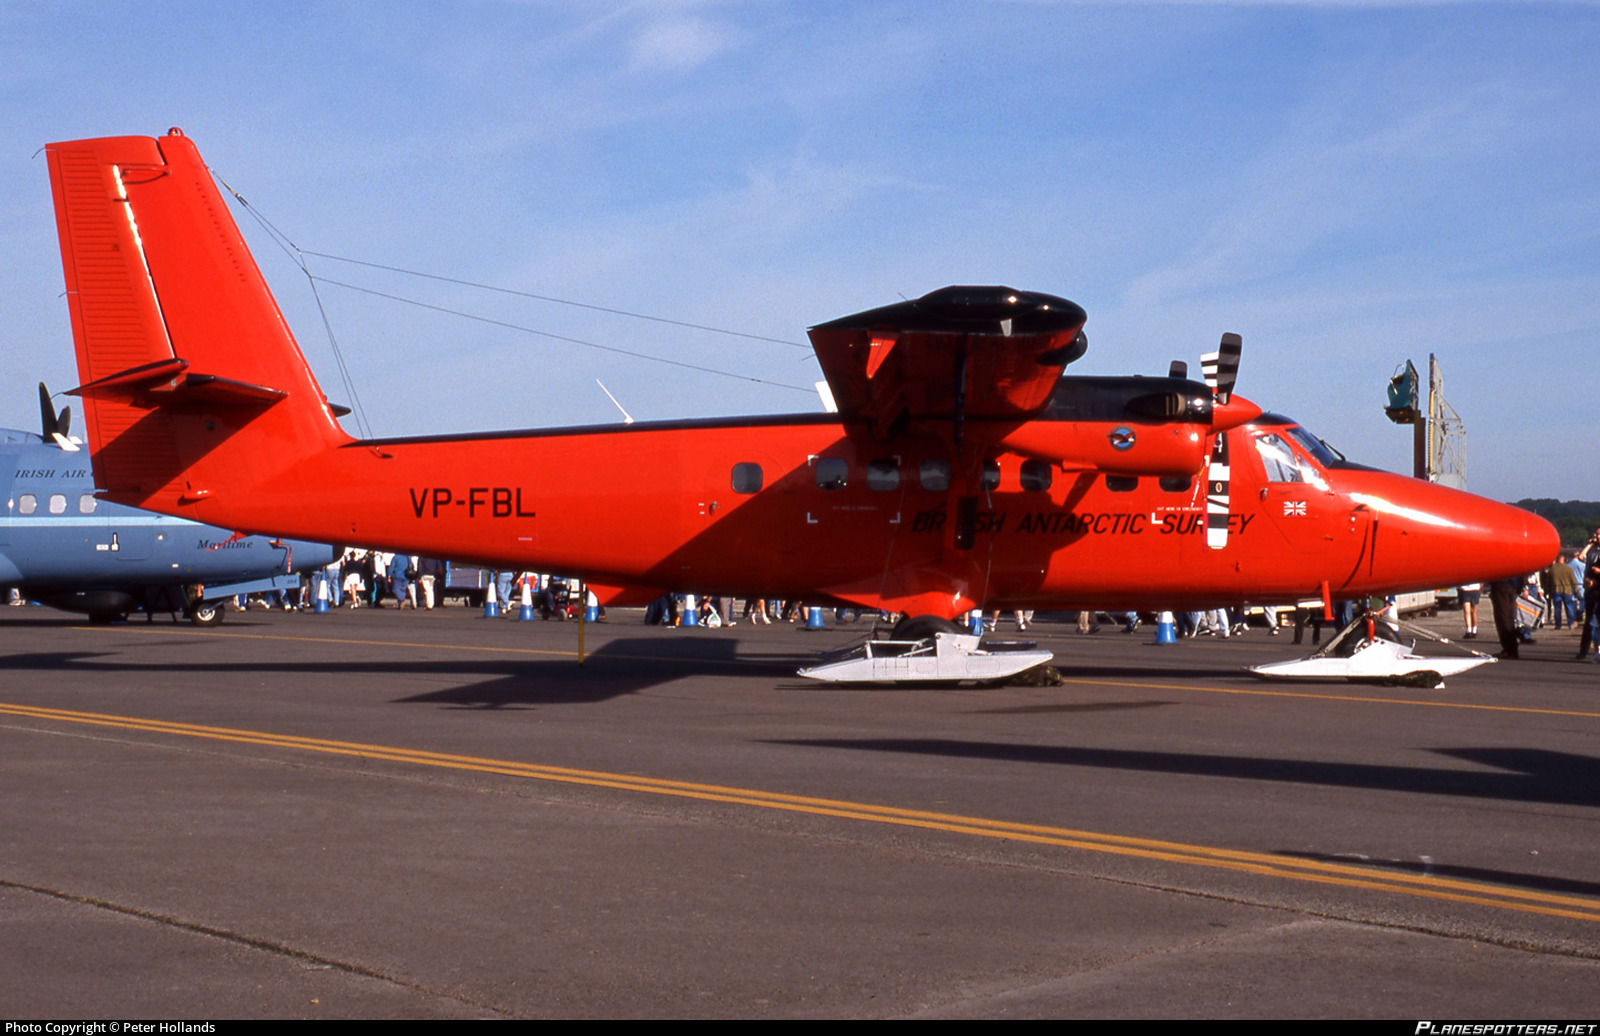 Vp Fbl British Antarctic Survey De Havilland Canada Dhc 6 300 Twin Otter Photo By Peter Hollands Id 1128315 Planespotters Net